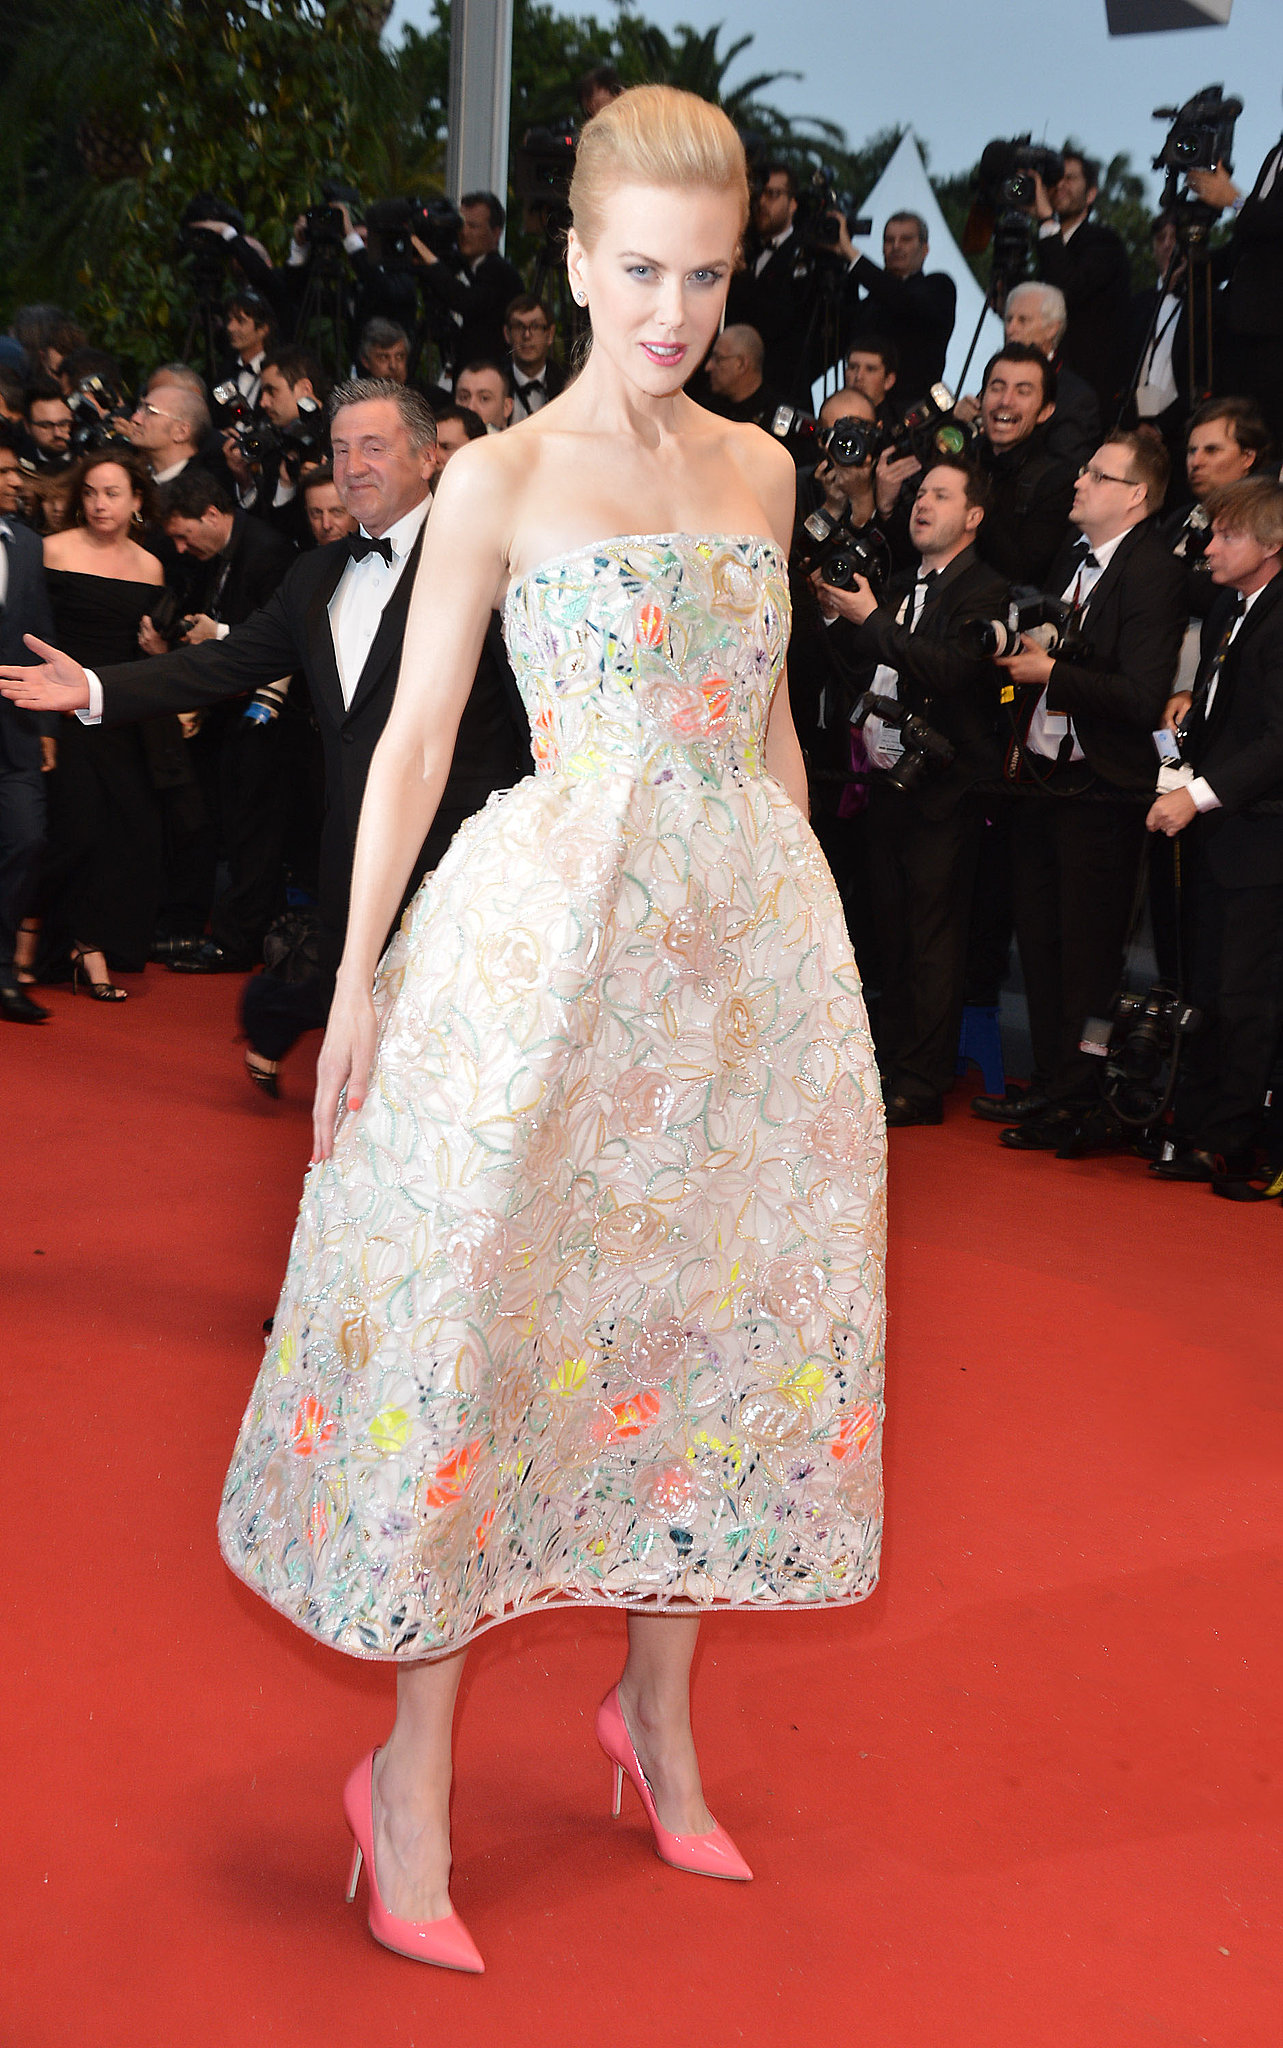 Nicole Kidman was a ladylike vision in her embellished Dior gown and neon pink pumps at the Cannes premiere of The Great Gatsby.